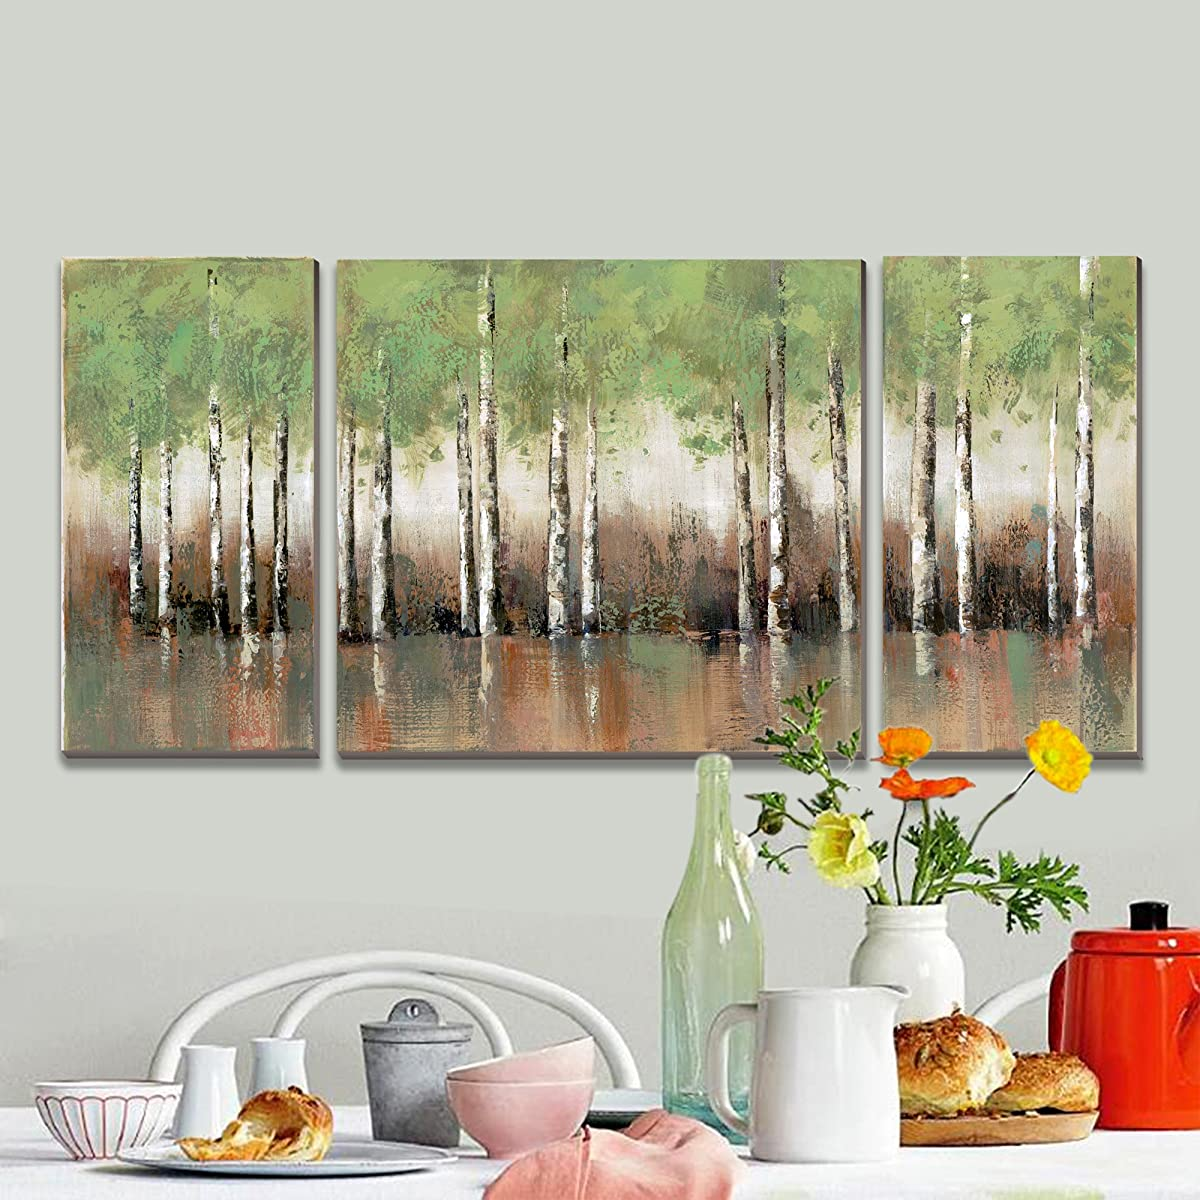 3Hdeko - Birch Tree Green Forest Wall Art Aspen Grove Landscape Painting Print on Canvas for Living Room Bedroom Kitchen 3 Pieces Modern Home Decoration